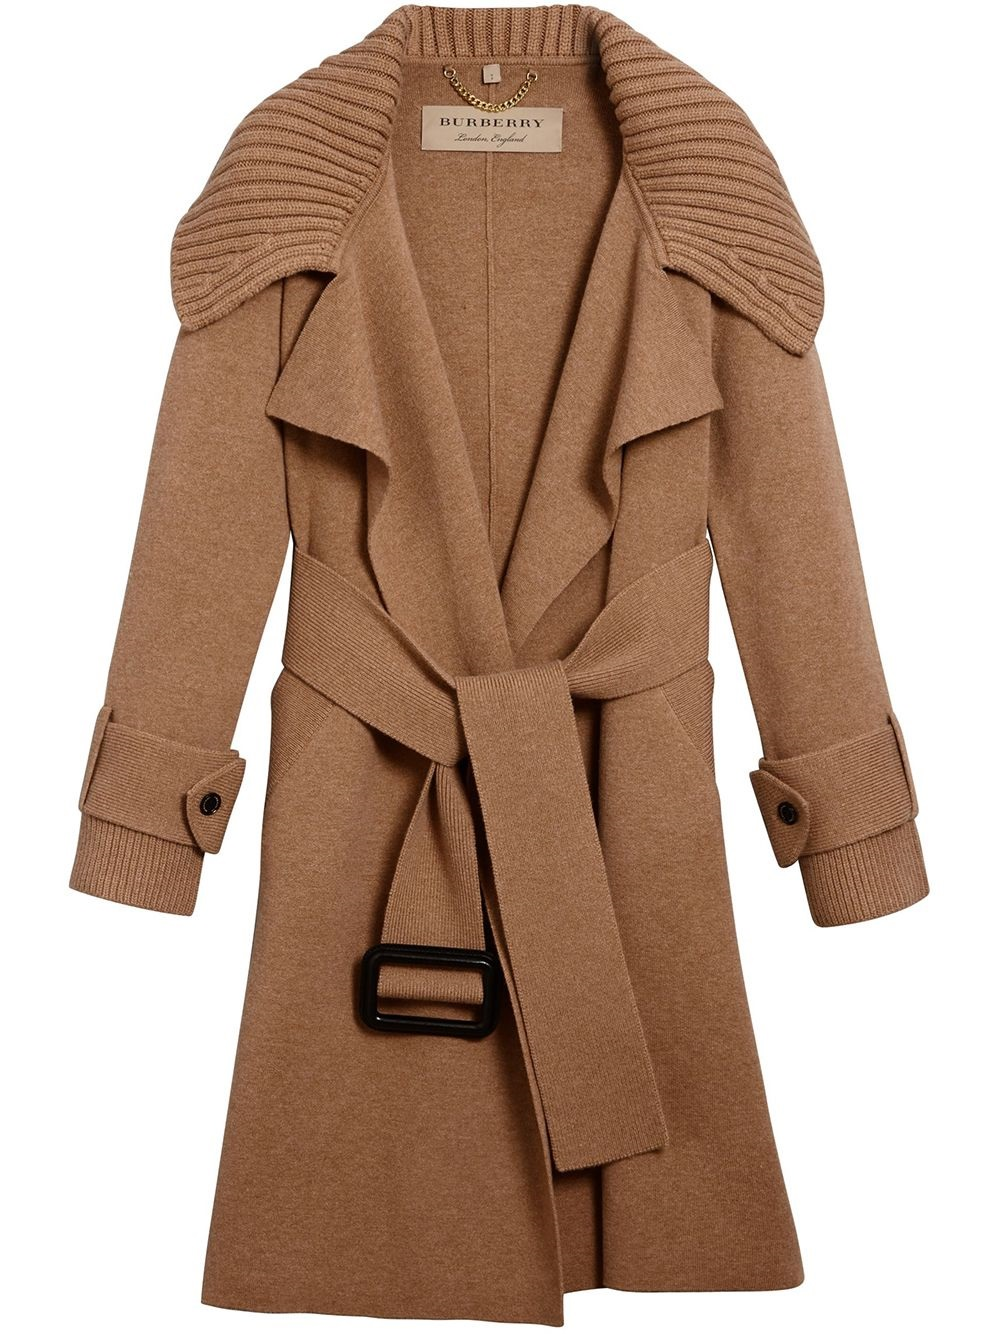 Burberry Piota Wool Blend Knit Trench Coat In Camel In Yellow